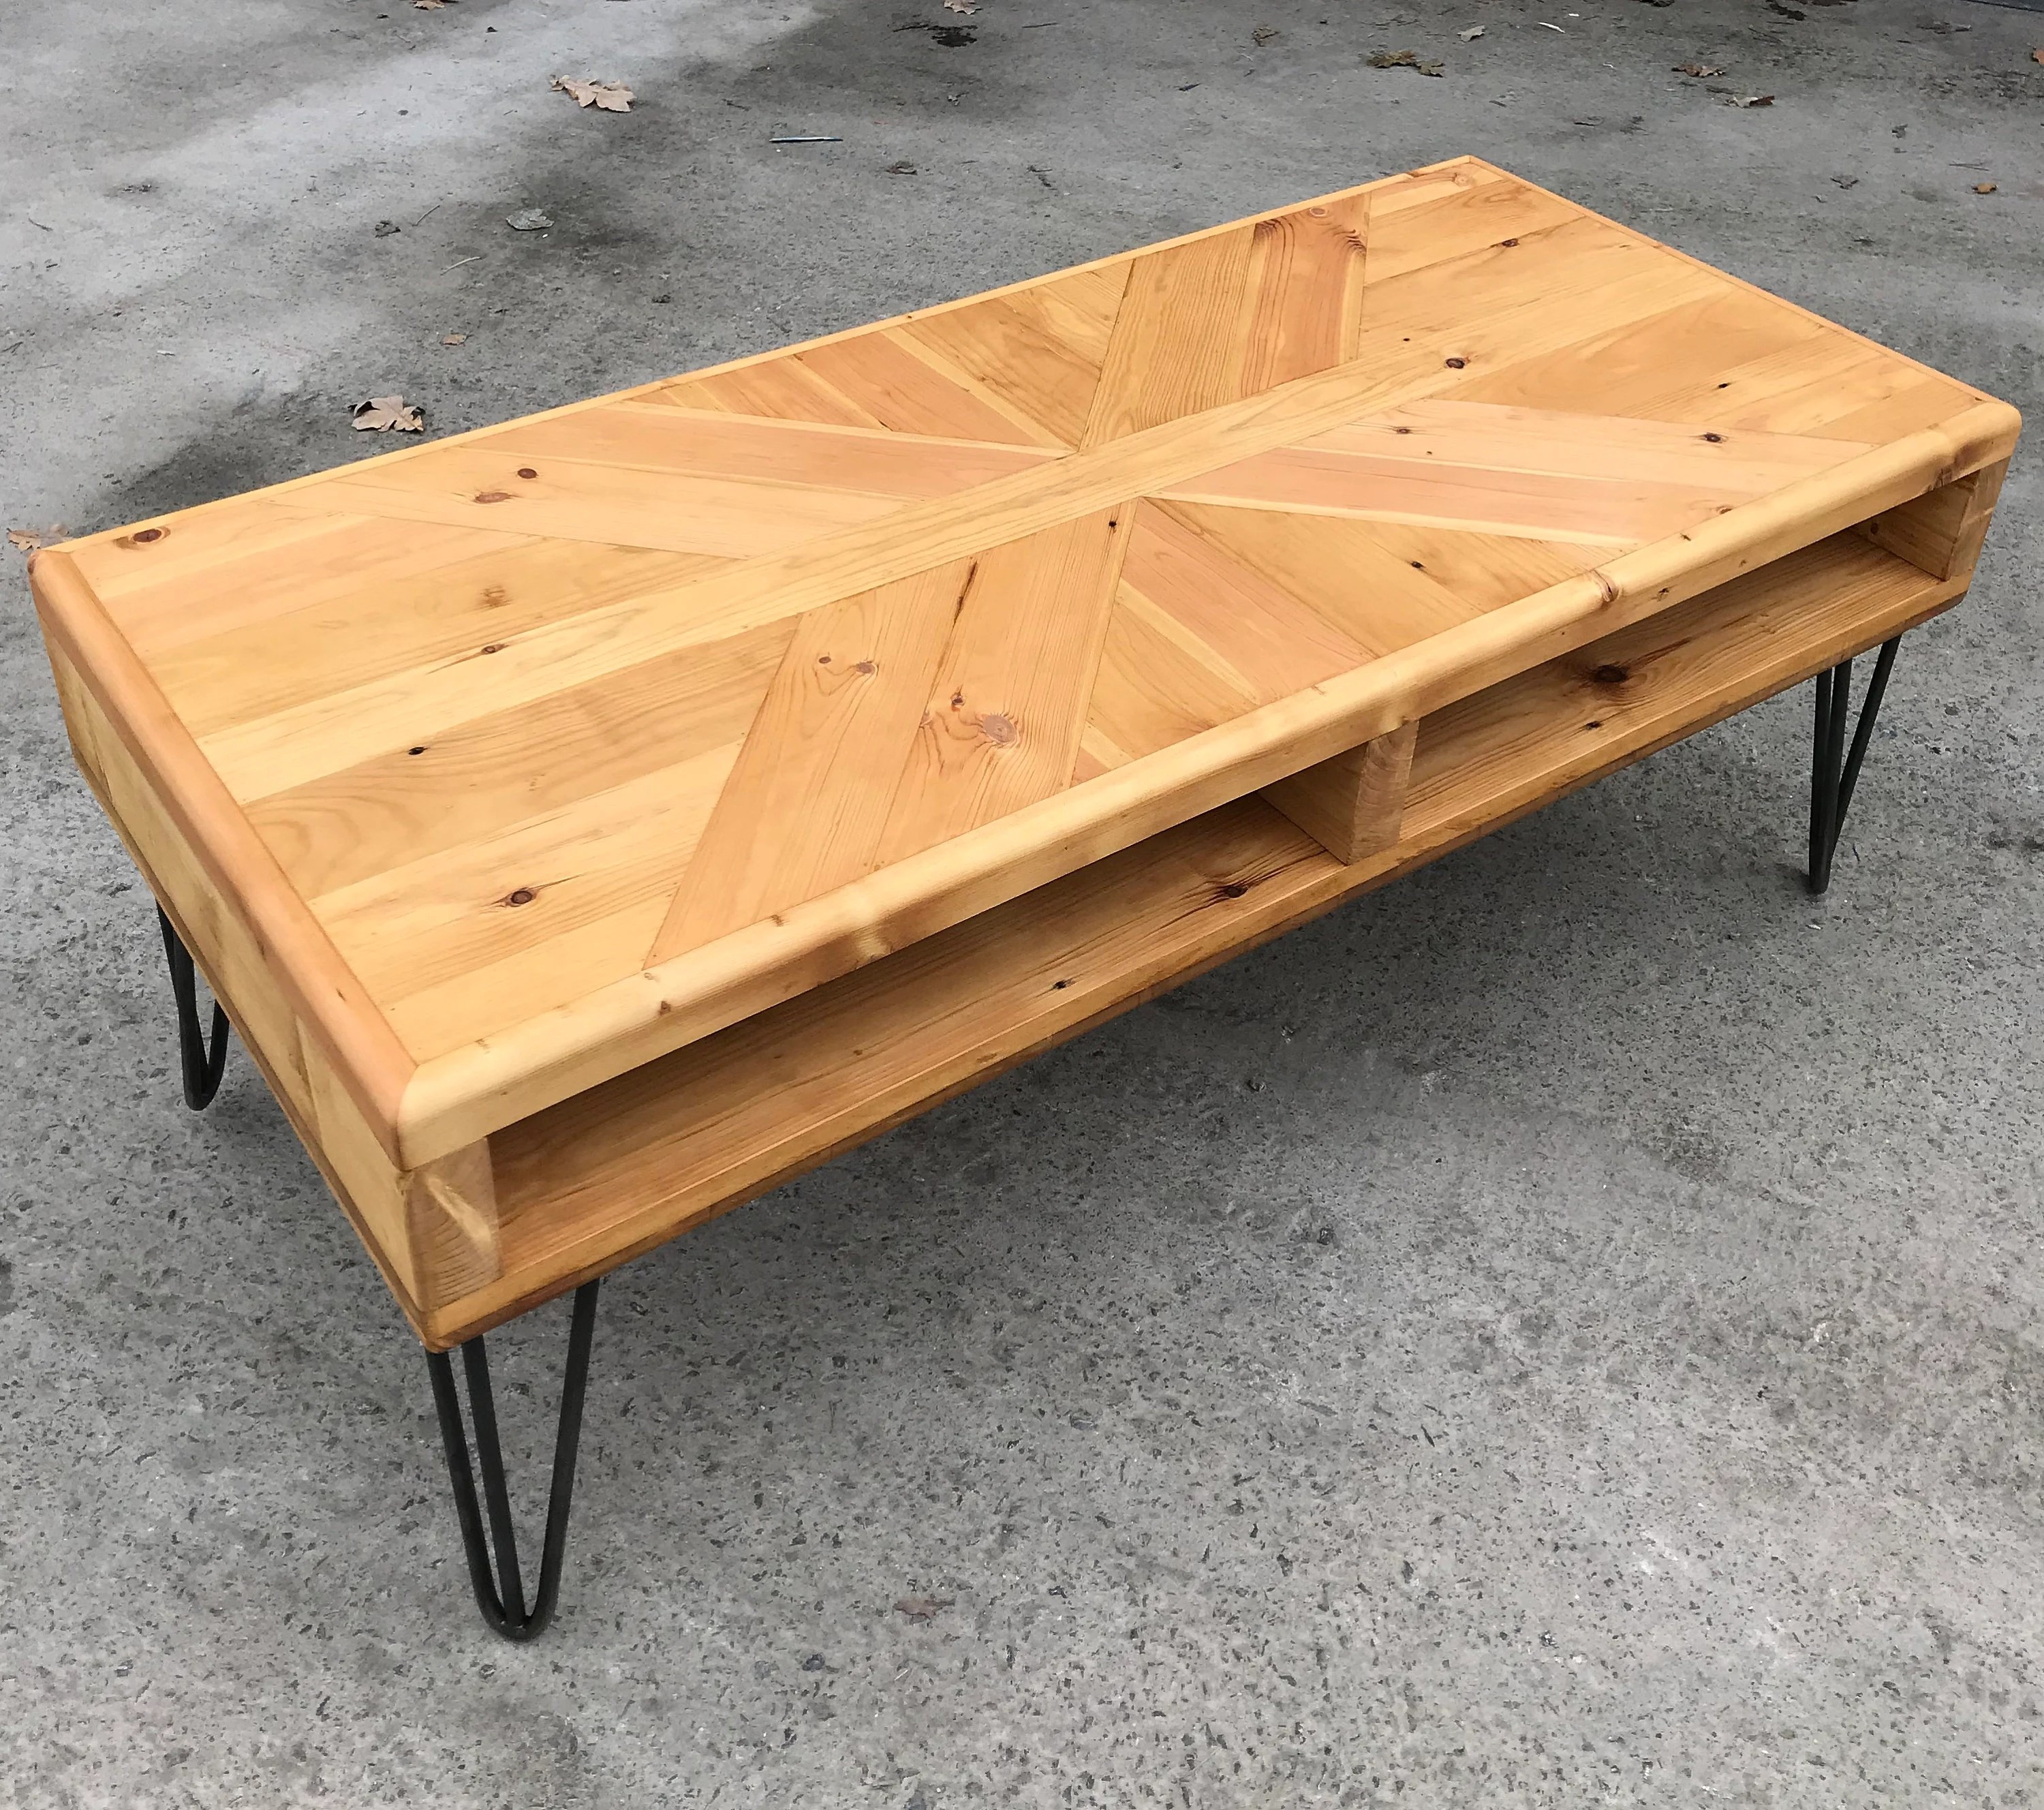 Couchtisch Montain Oak Reclaimed Coffee Table Rustic Industrial Hairpin Legs Hand Made Reclaimed Pine Wood Broome Design